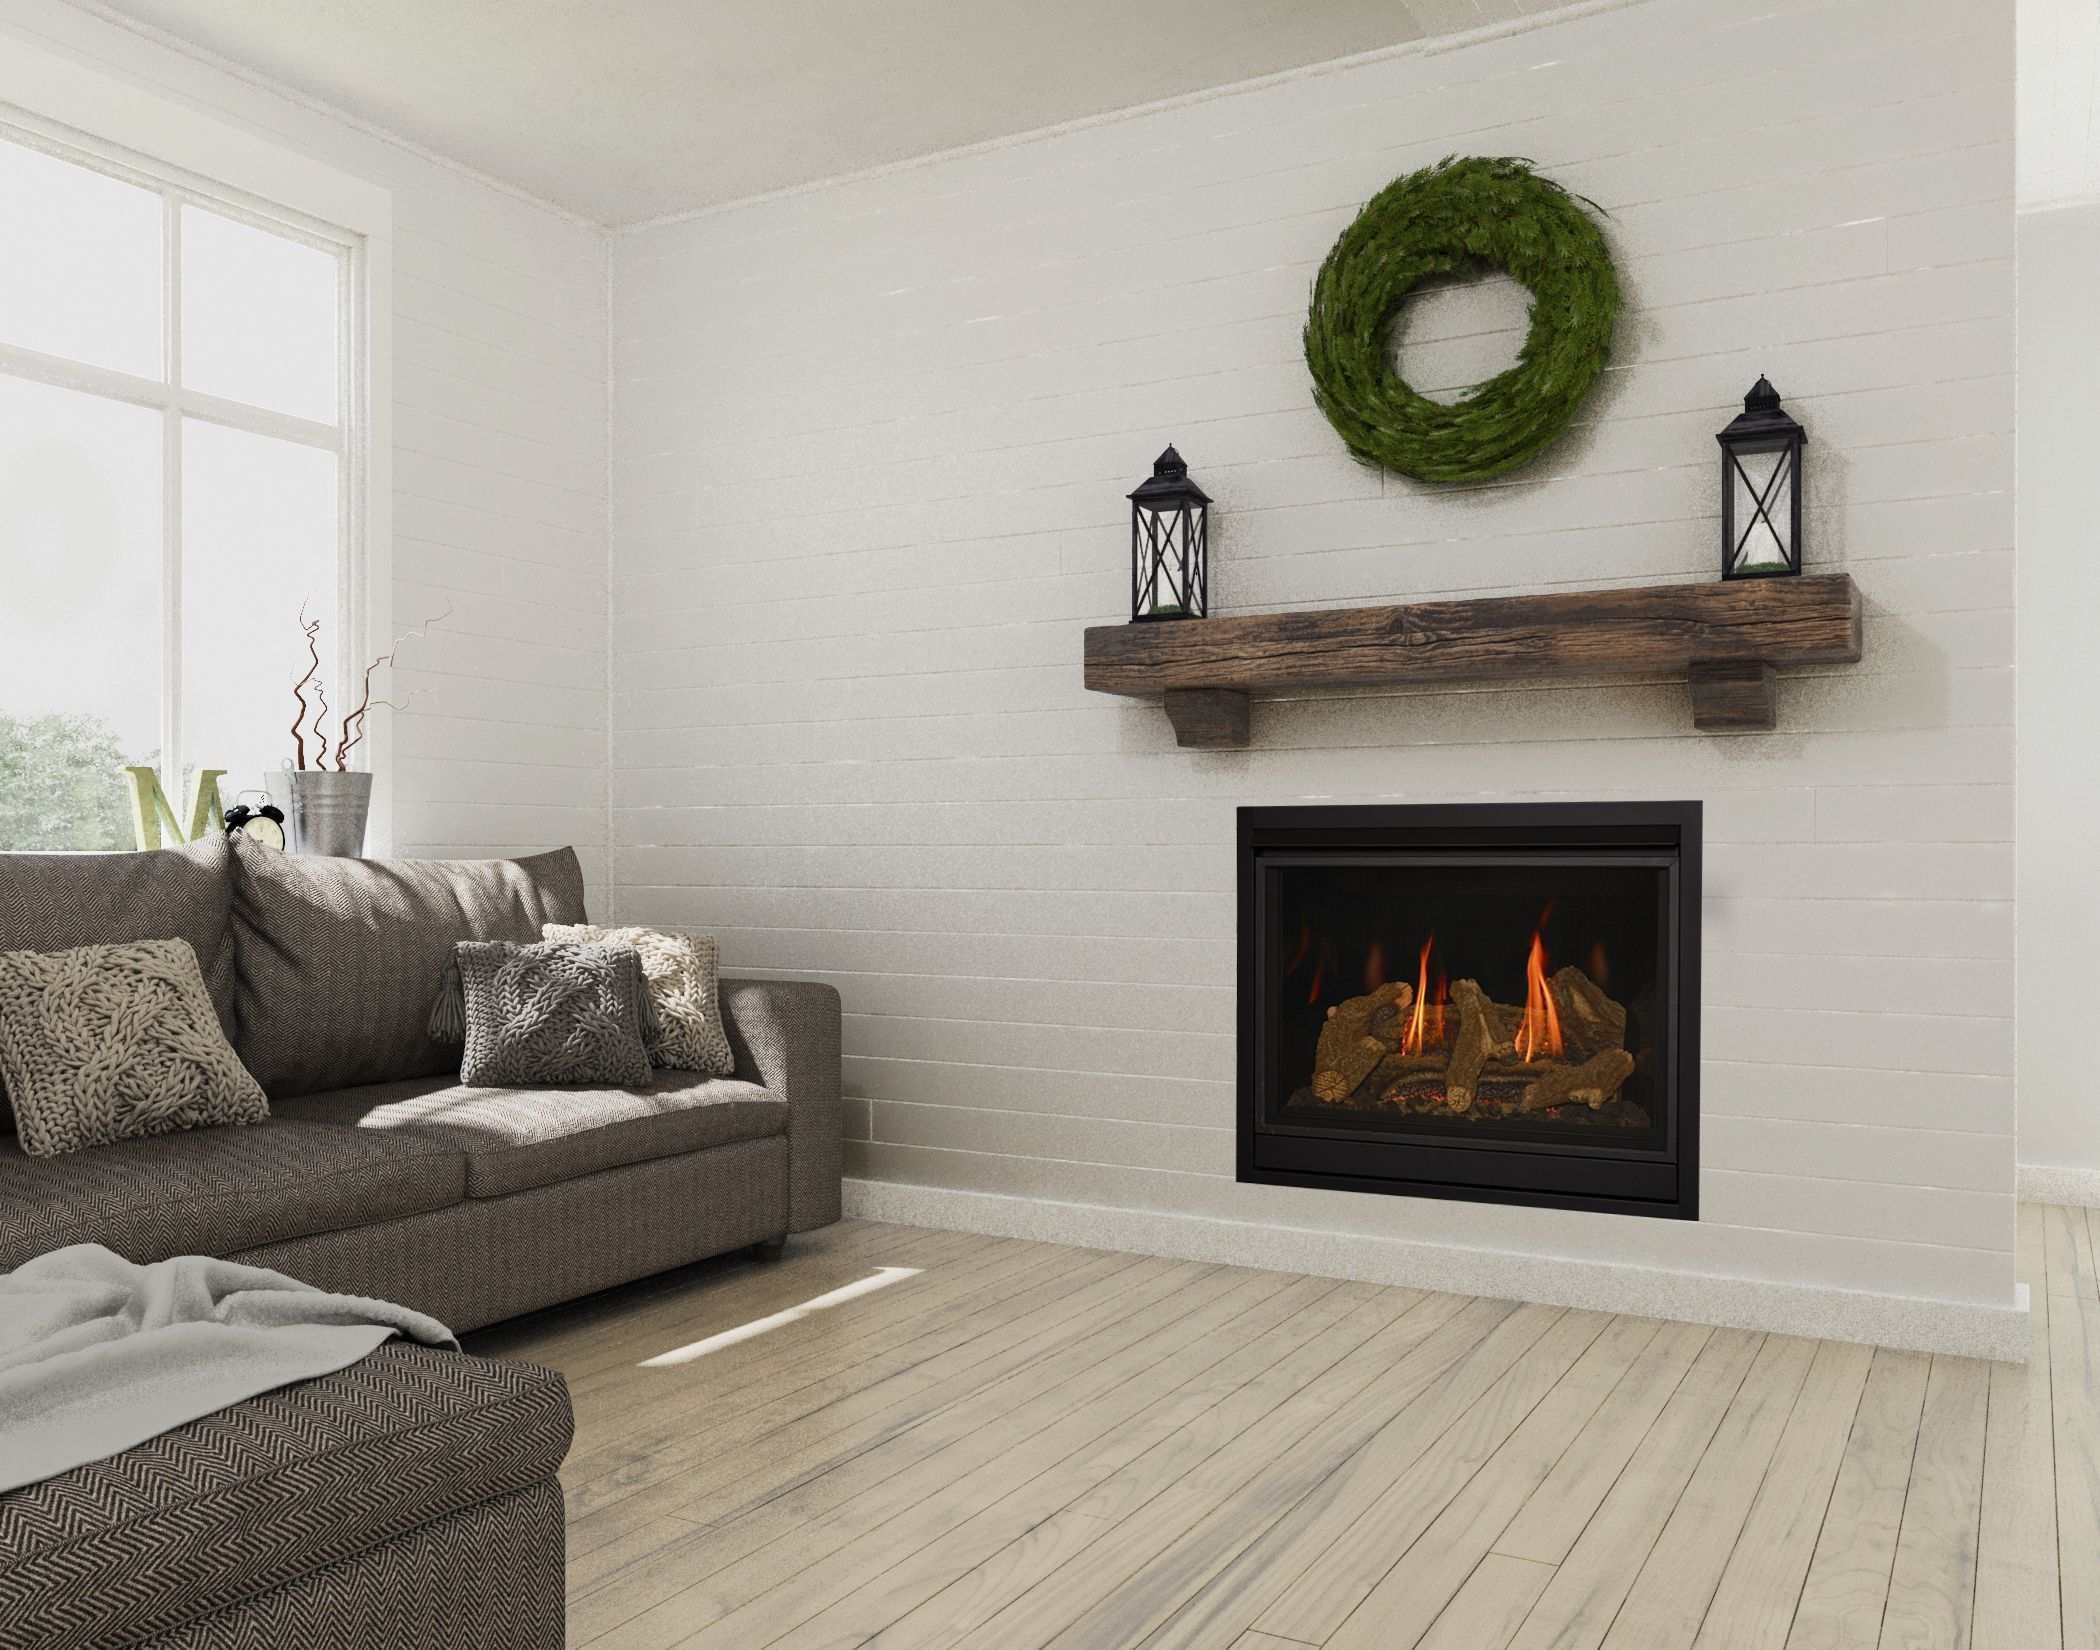 Six Reasons Why You Need a Fireplace